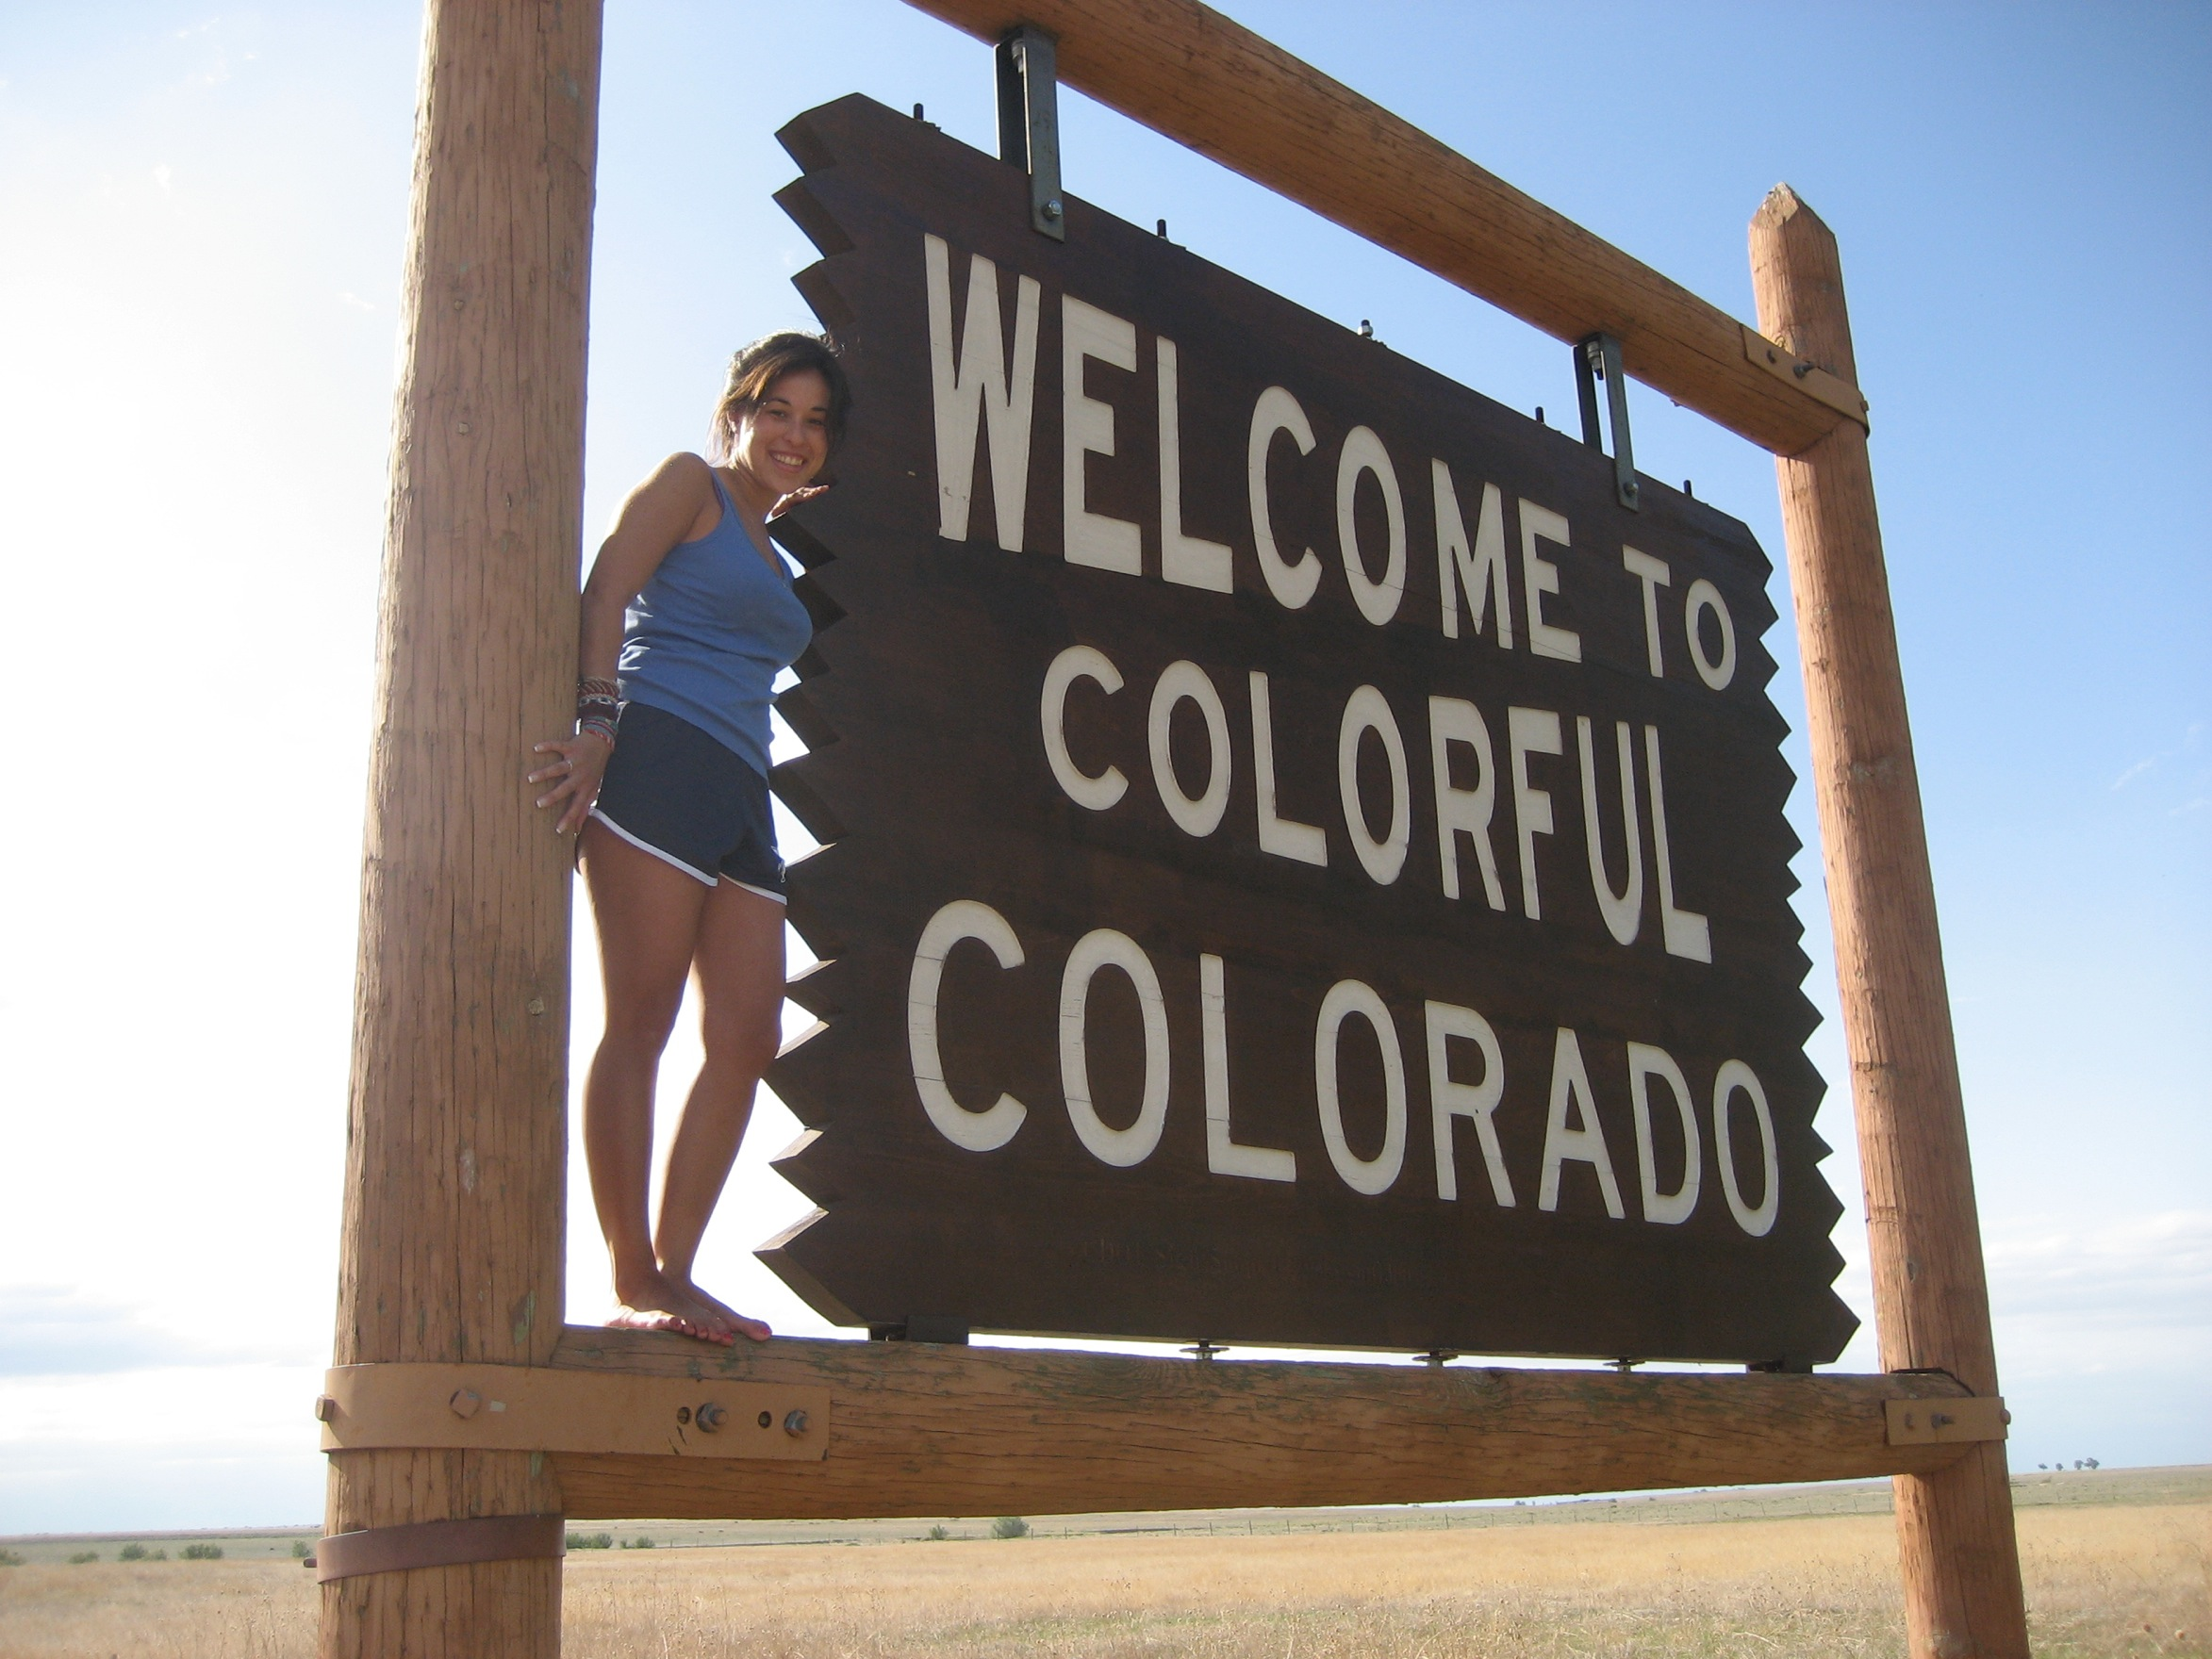 Colorado welcome sign